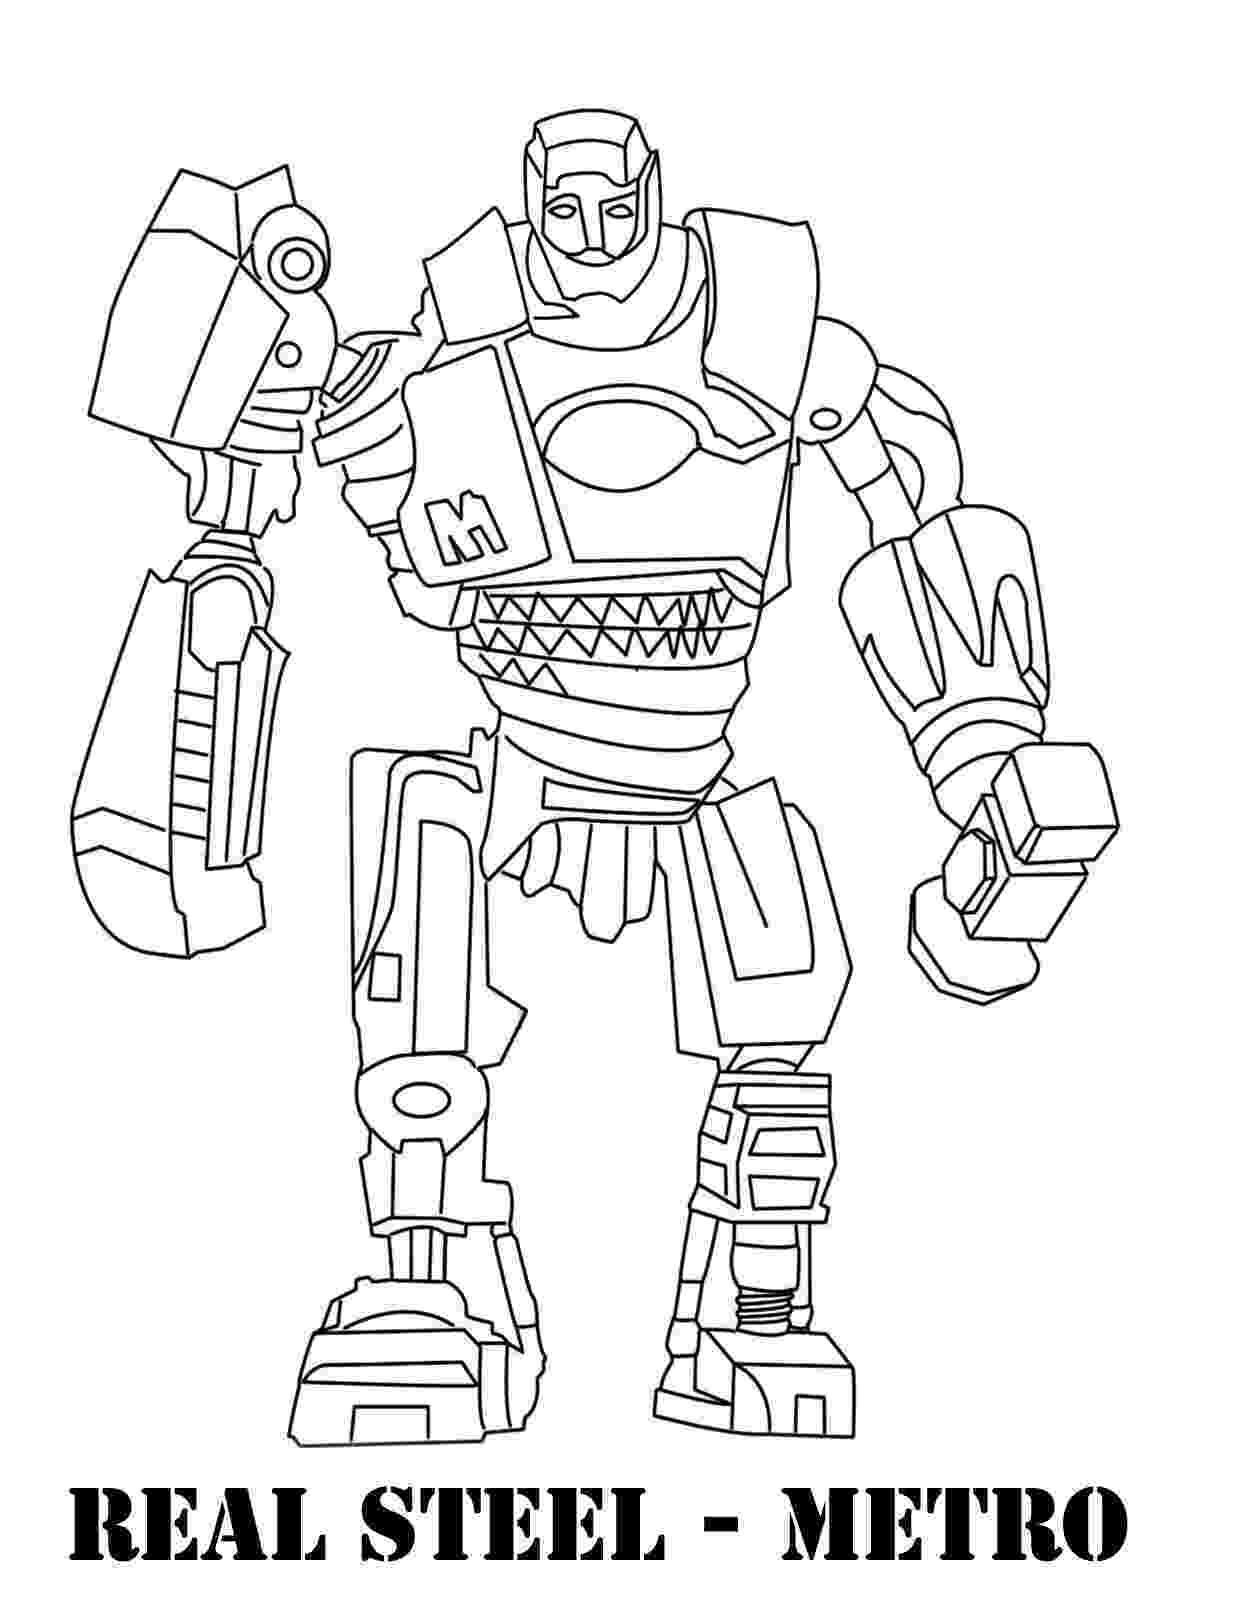 colouring pages for real steel real steel coloring pages coloring pages to download and pages for colouring real steel